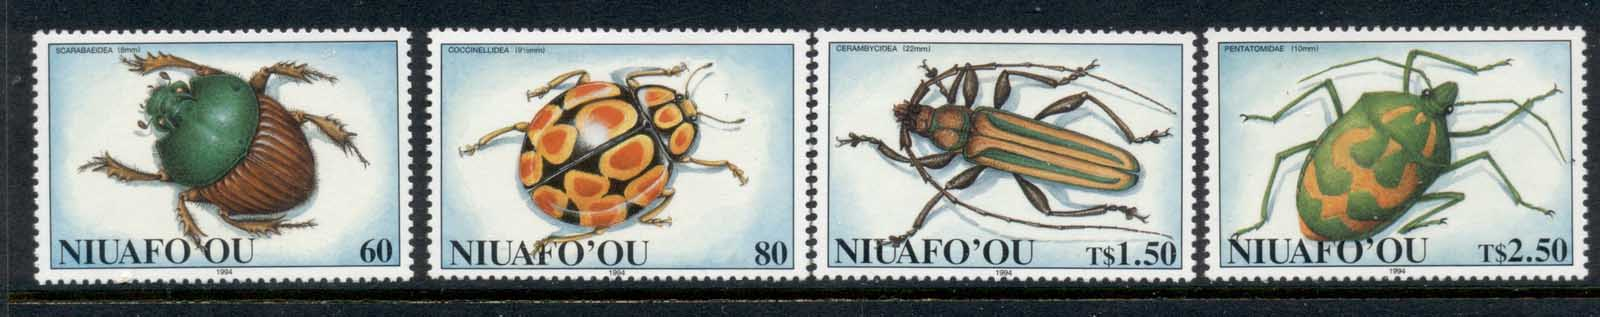 Tonga Niuafo'ou 1994 Insects, Beetles MUH